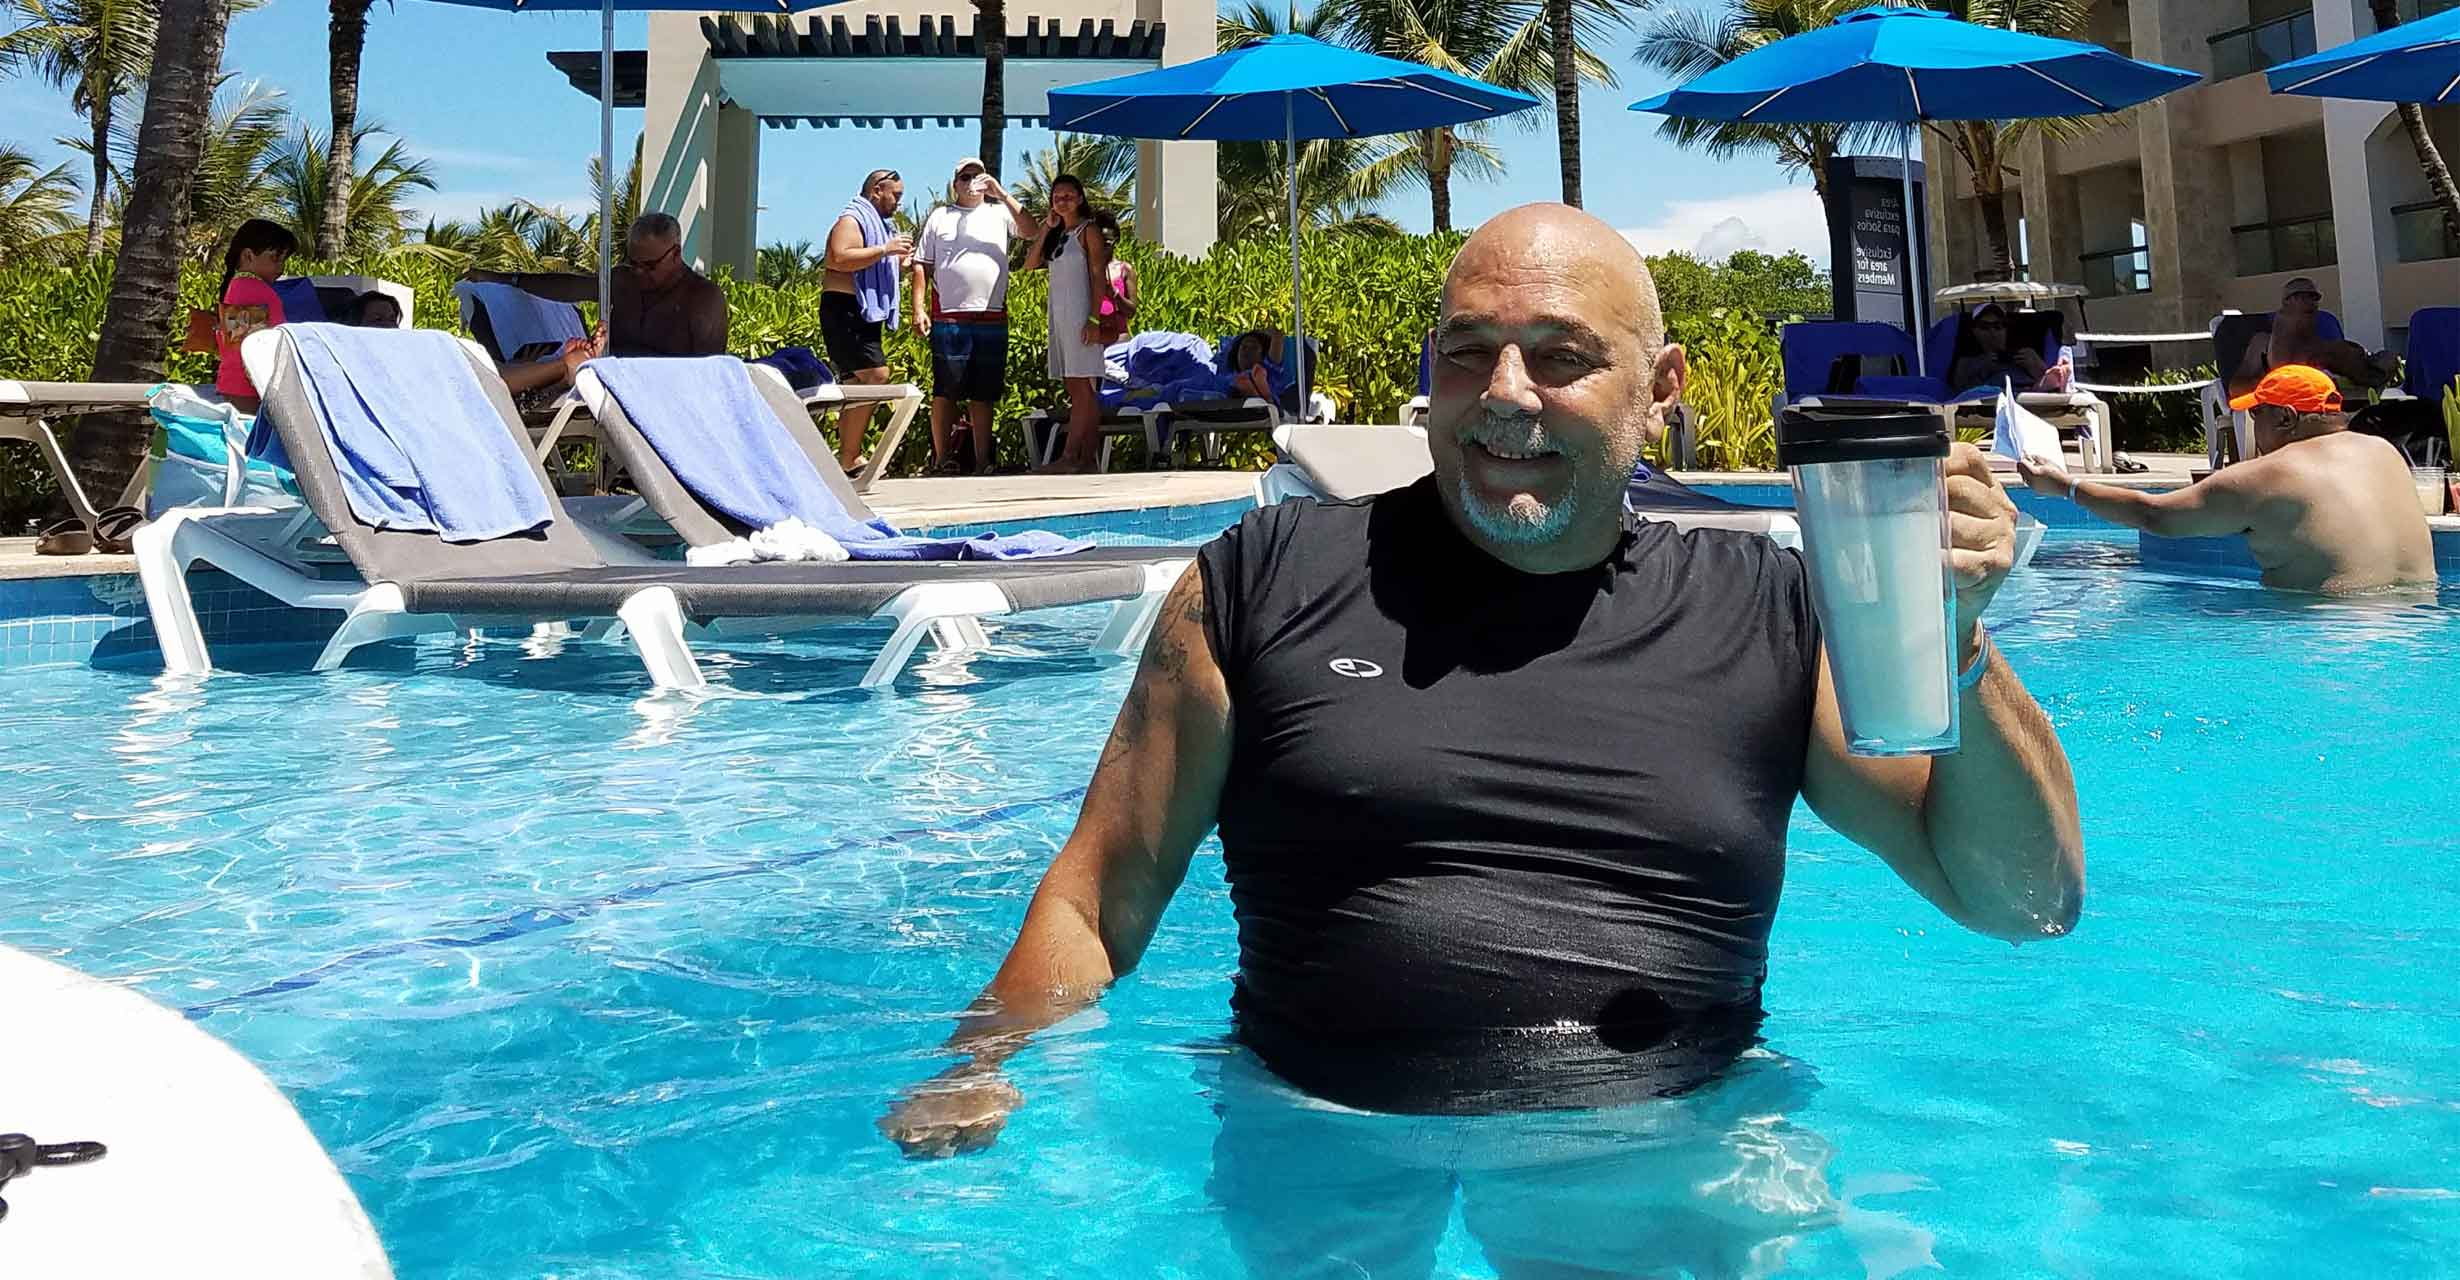 Joe Stivala standing in pool